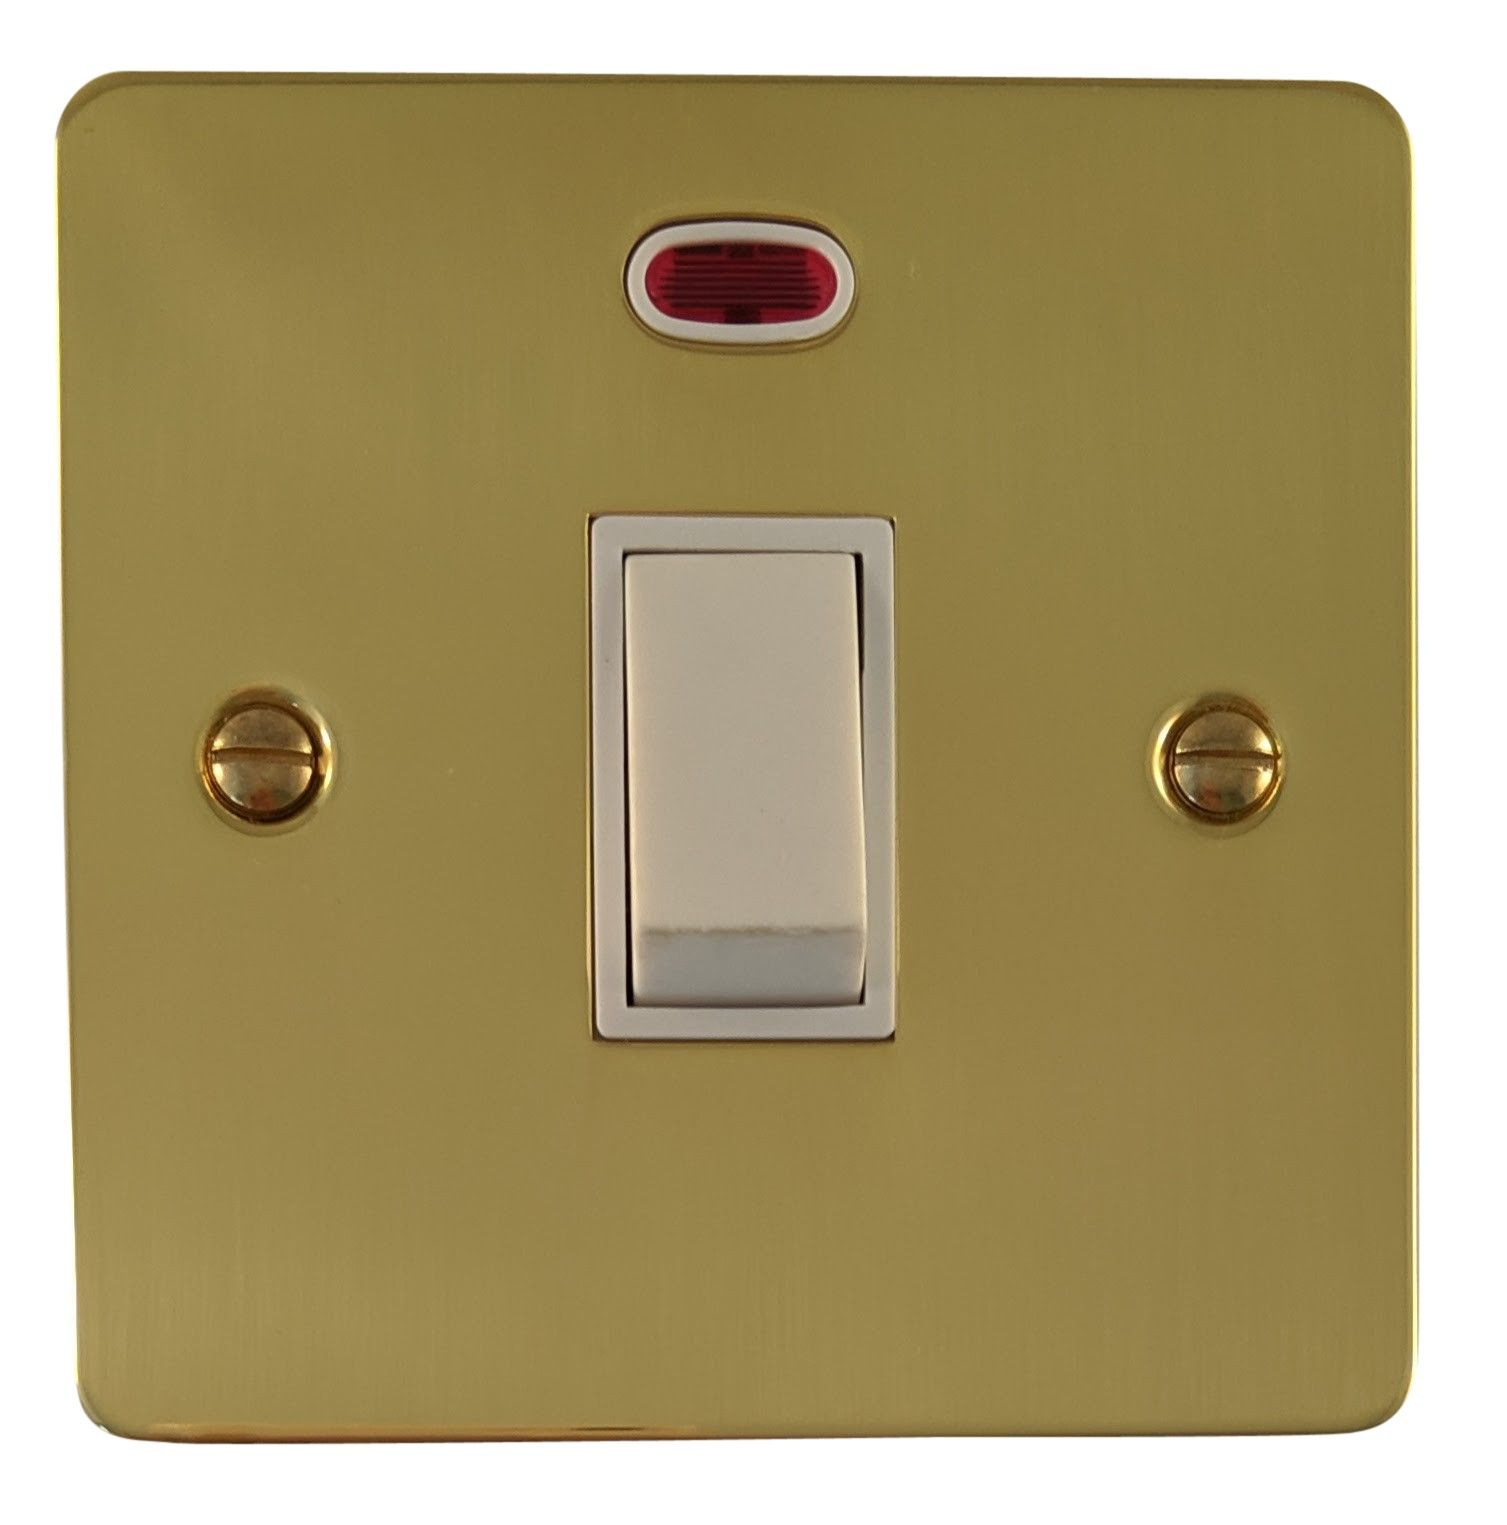 G&H FB26W Flat Plate Polished Brass 1 Gang 20 Amp Double Pole Switch & Neon